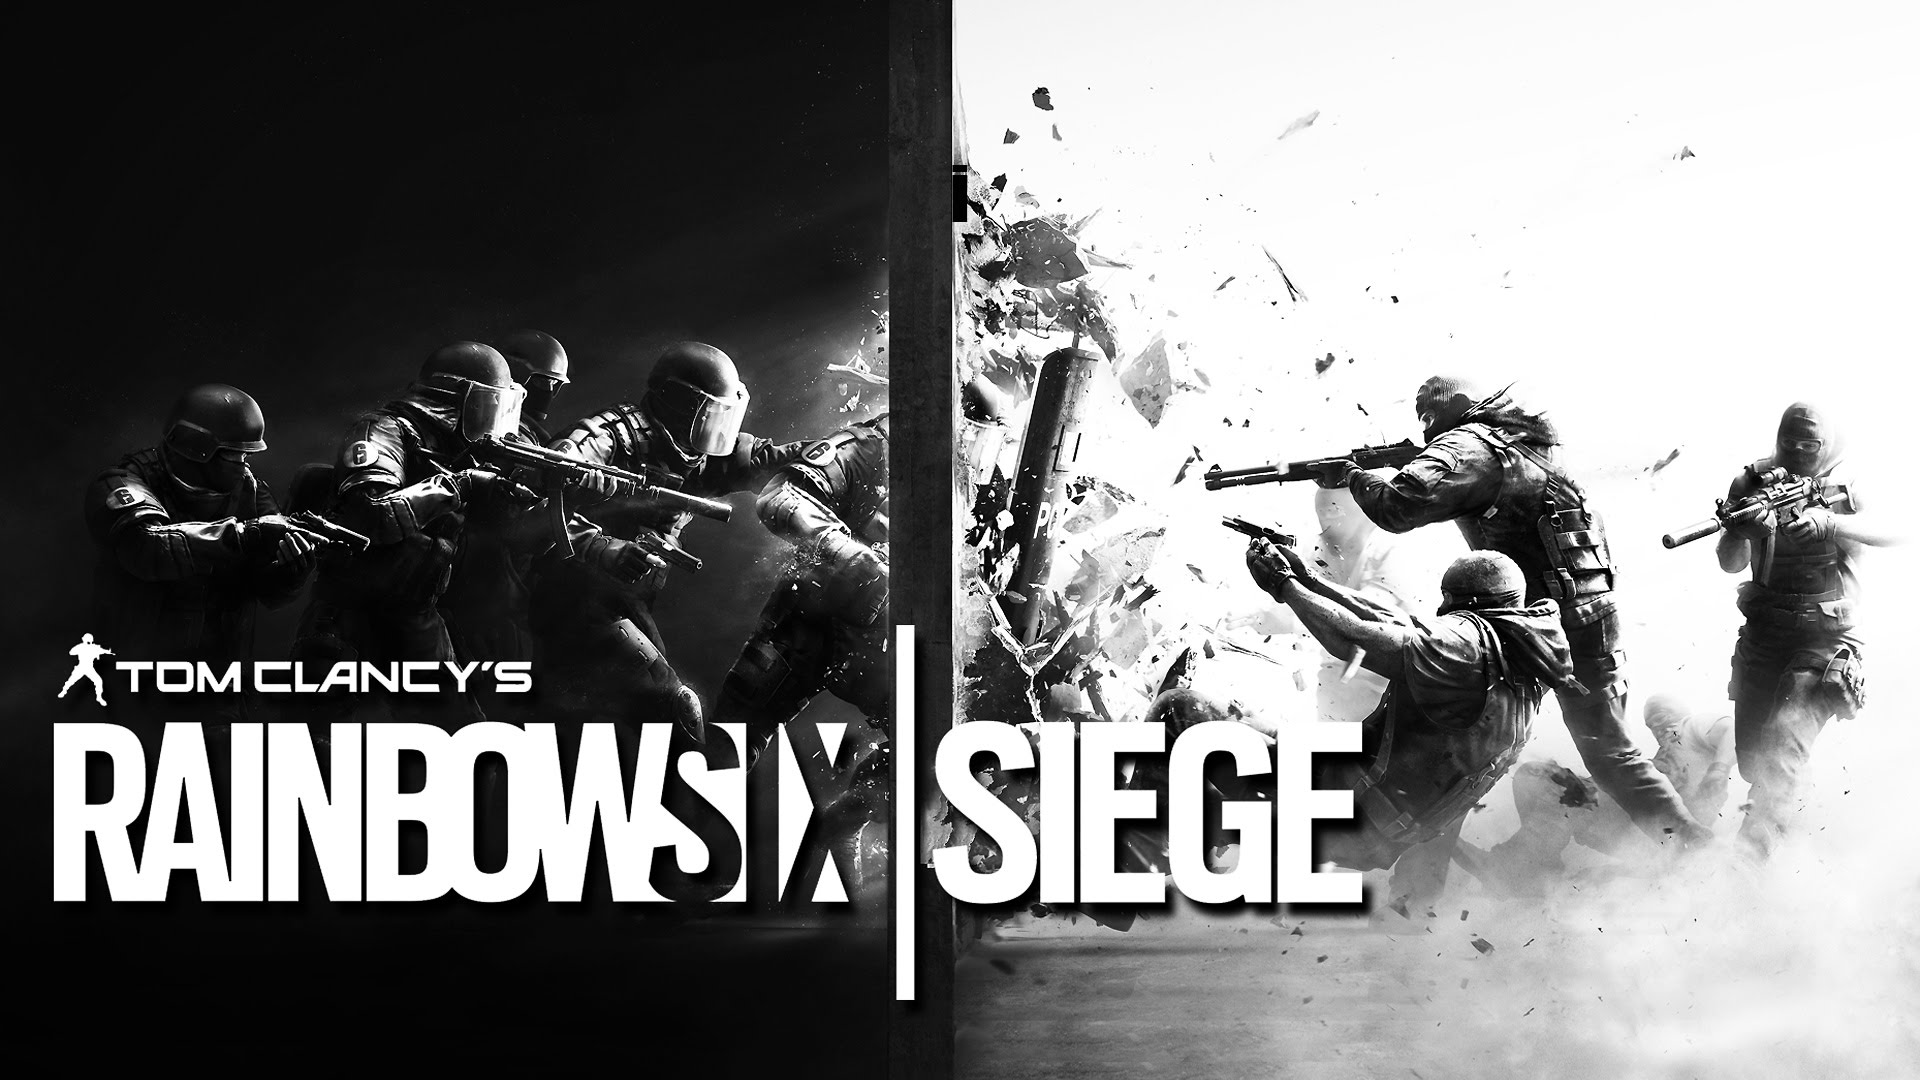 Tom Clancy's Rainbow Six: Siege HQ wallpapers